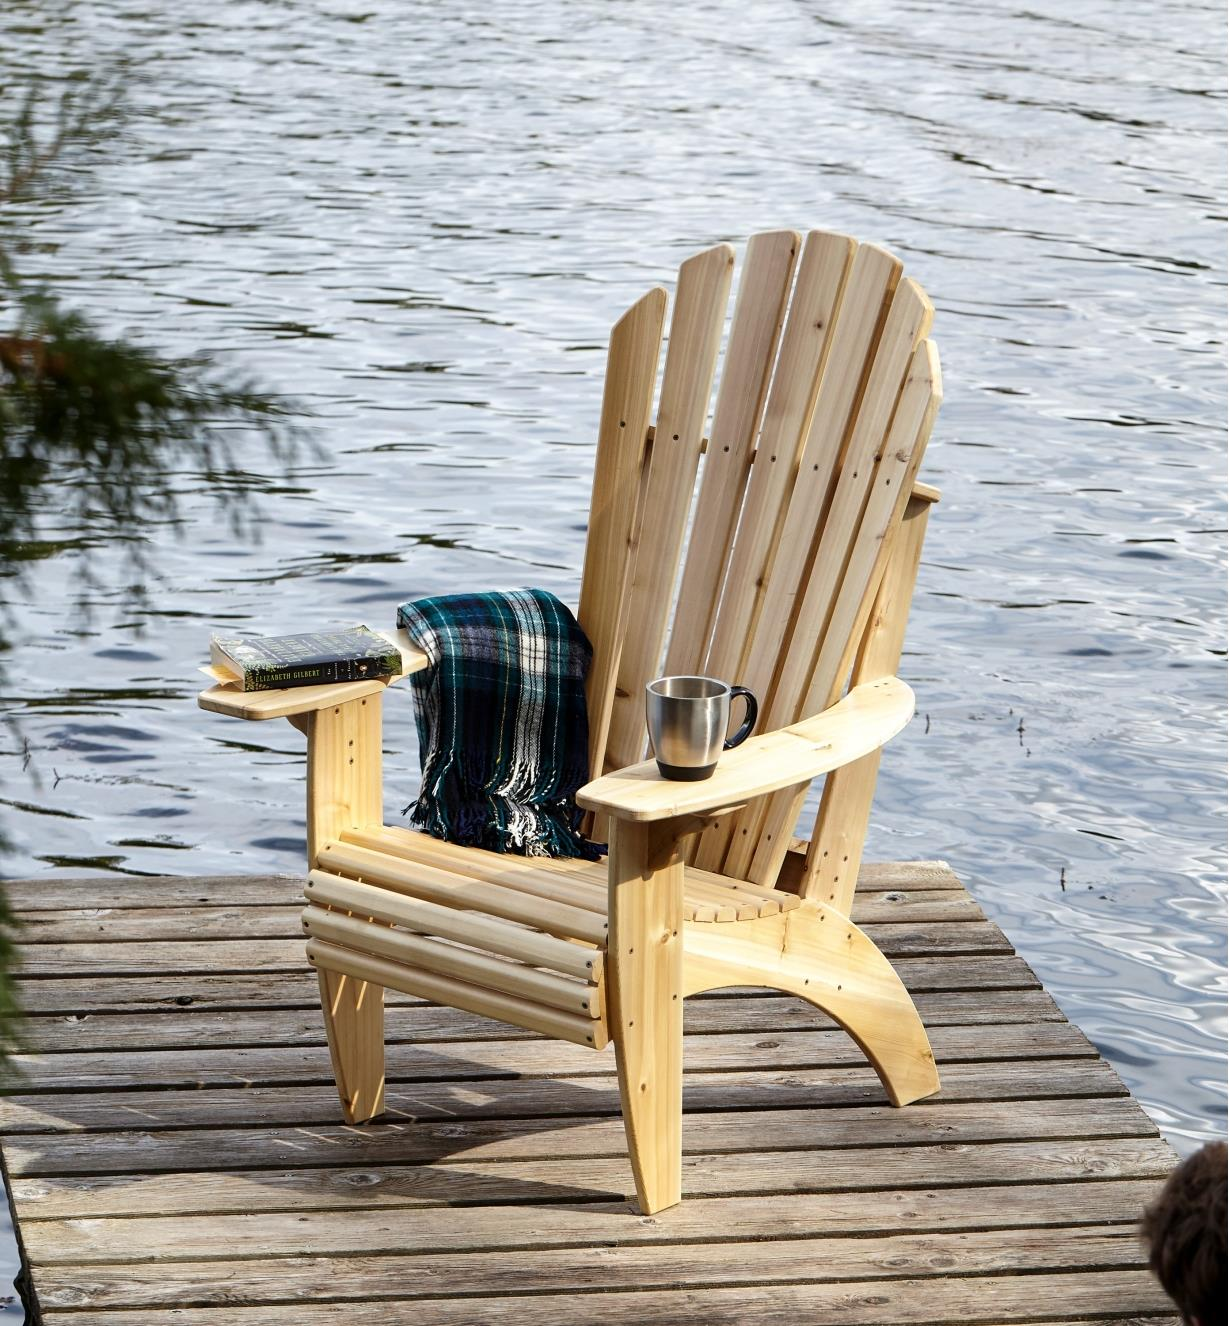 Front view of completed Kitchisippi Chair sitting on a dock